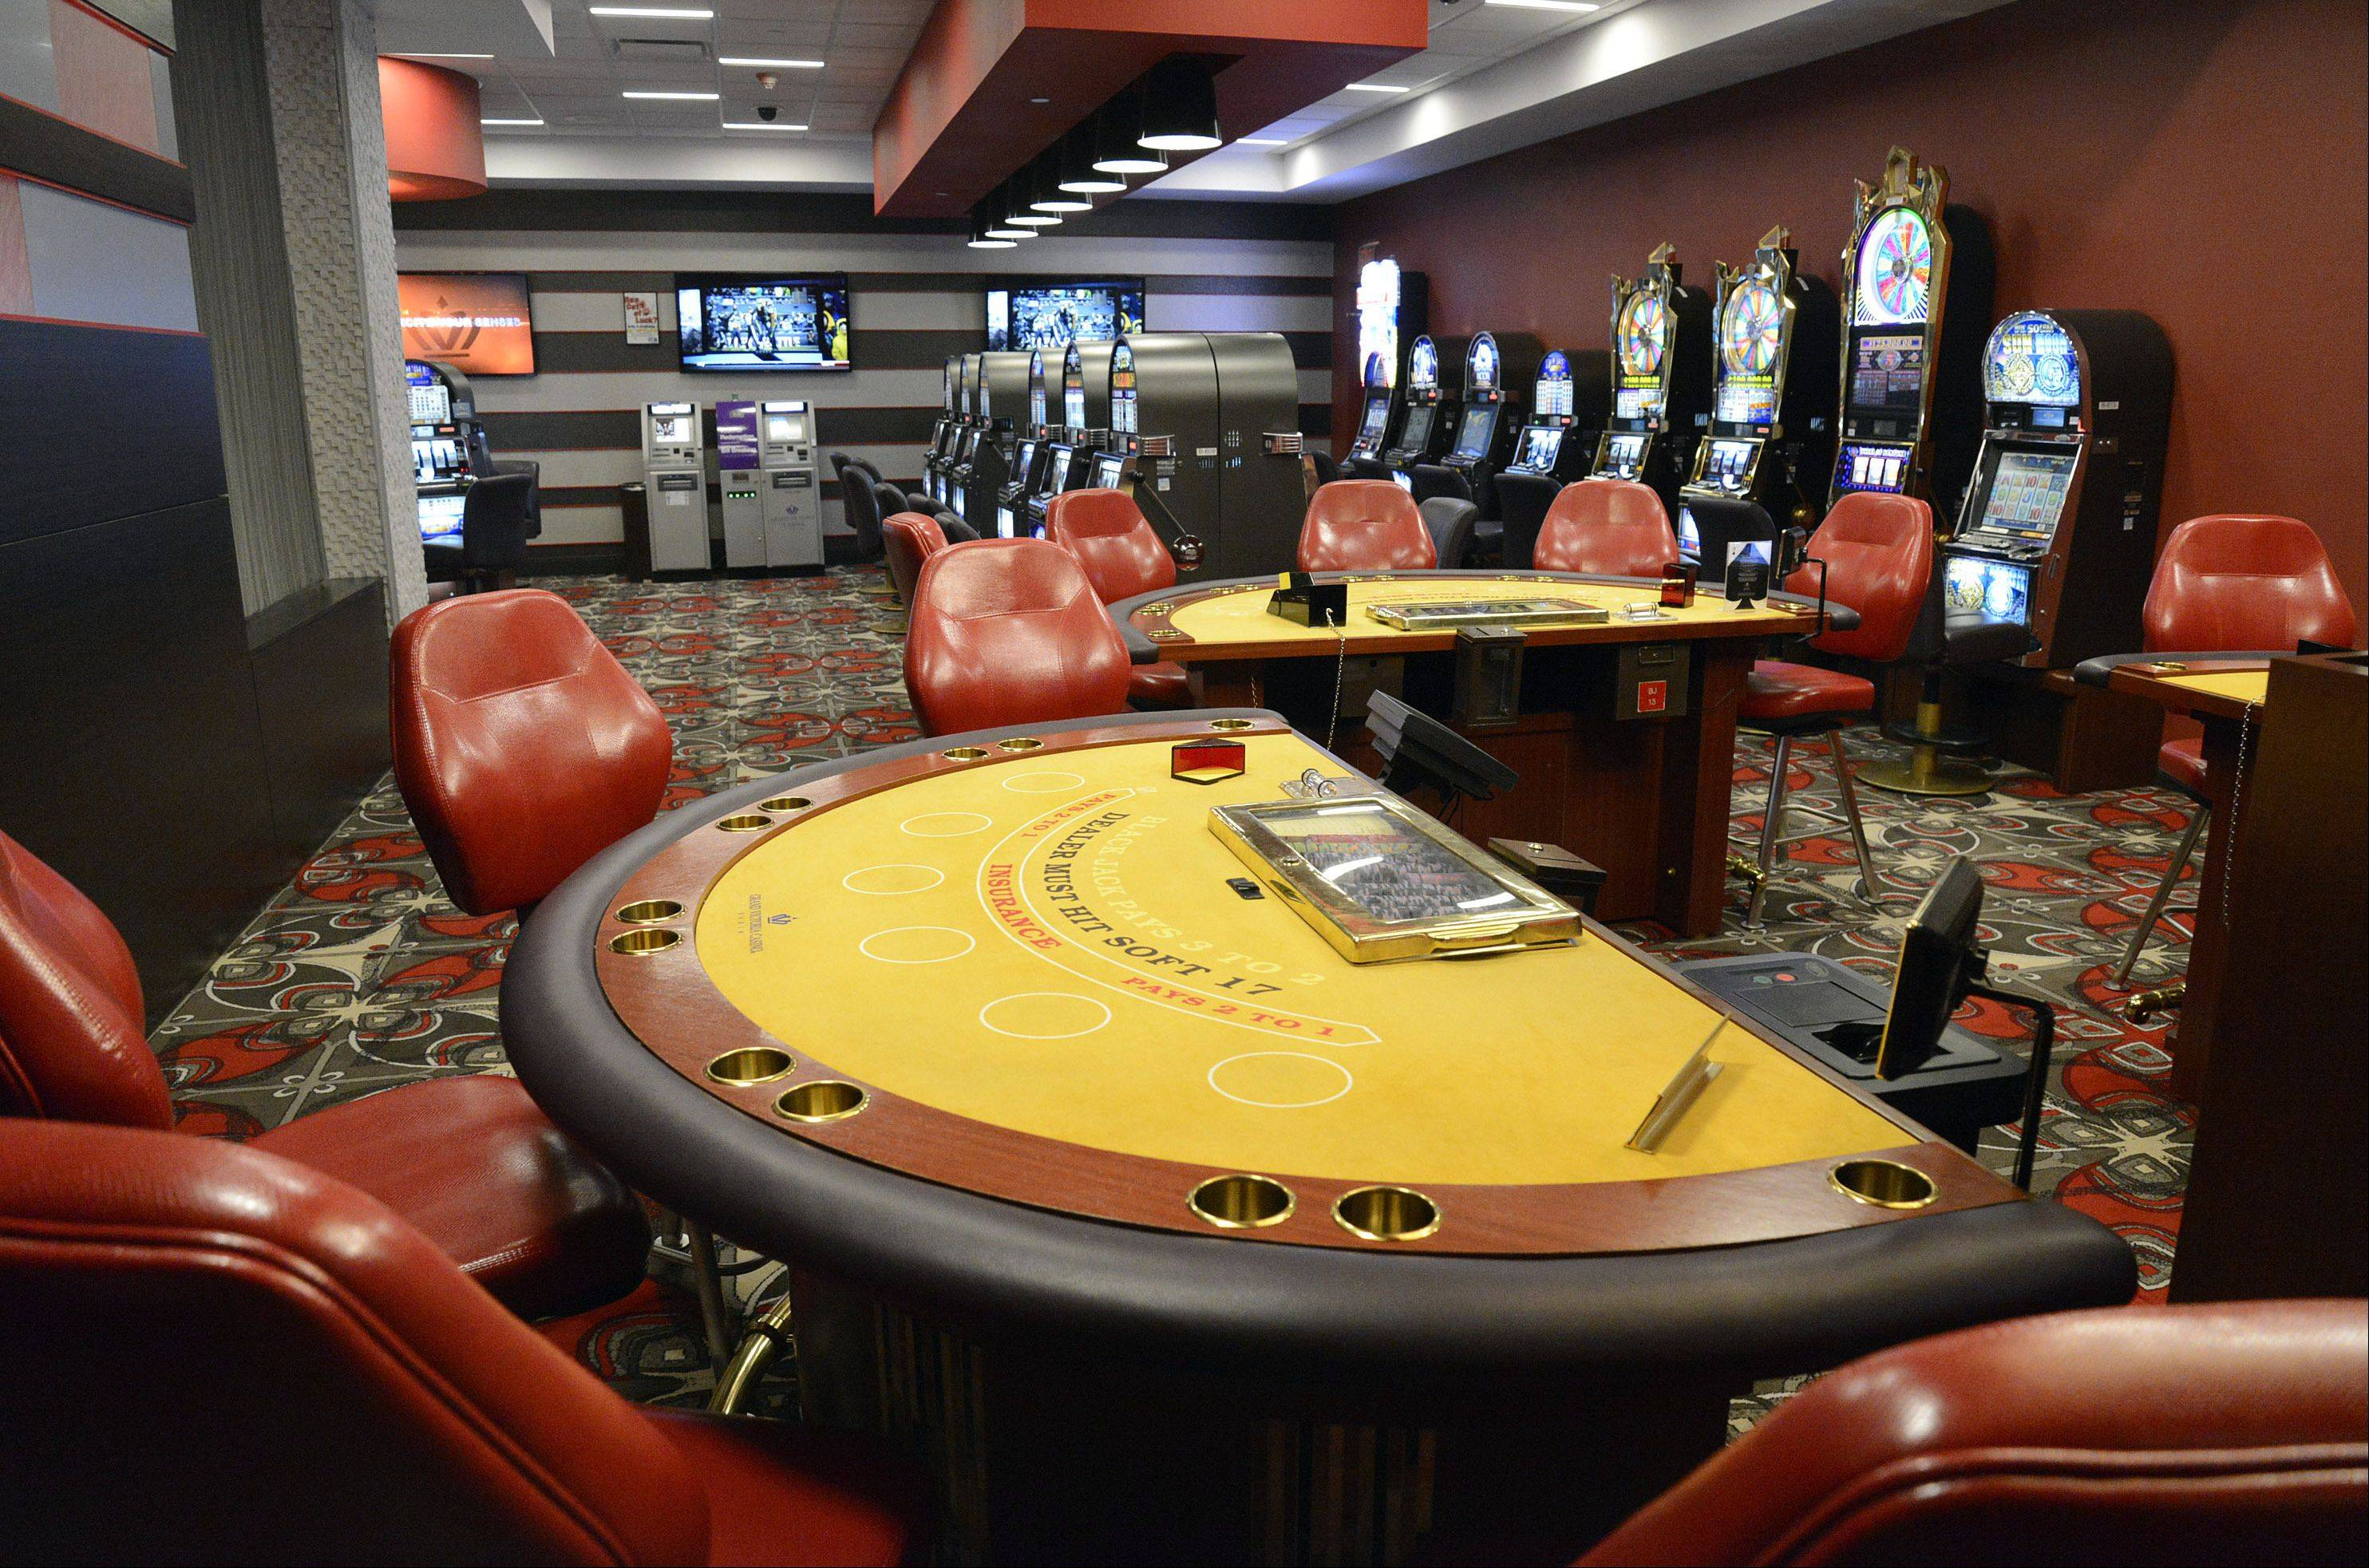 Grand Victoria Casino in Elgin has finished renovations in its casino/boat area. A separate gambling area, off the main casino floor, features a table and slots that start at a higher dollar amount.